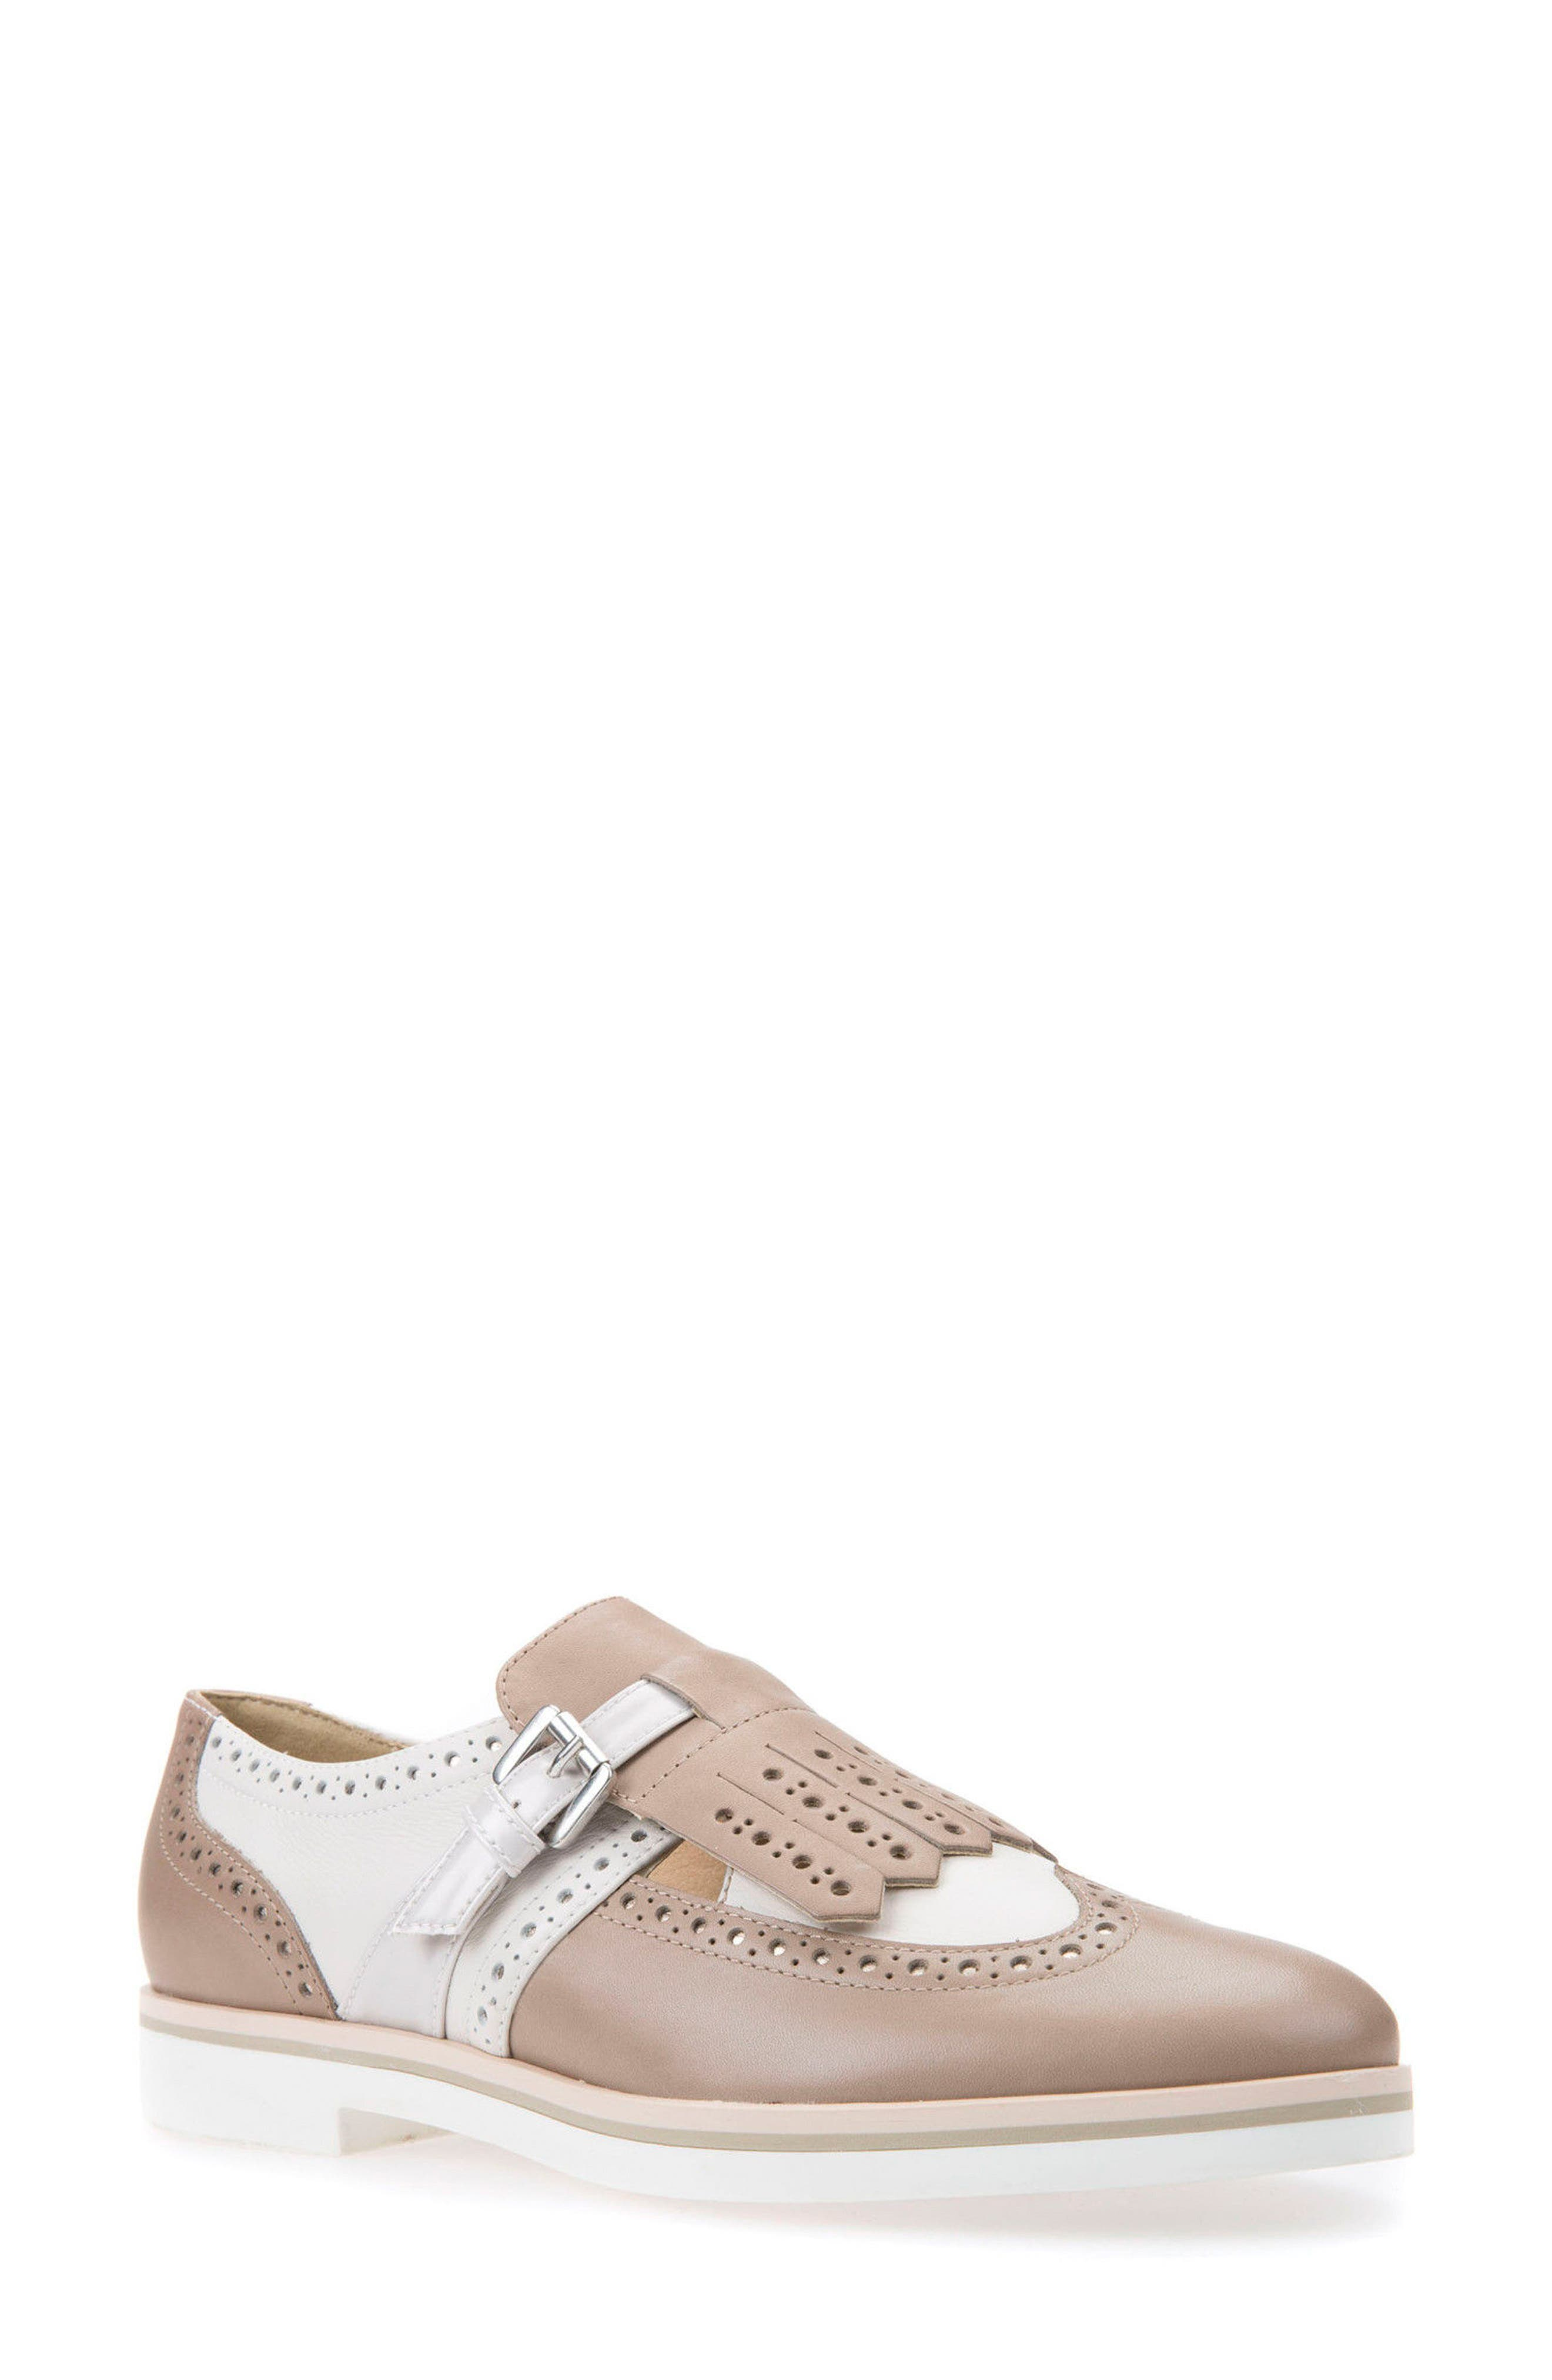 Janalee Cutout Loafer,                             Main thumbnail 1, color,                             Sand Leather